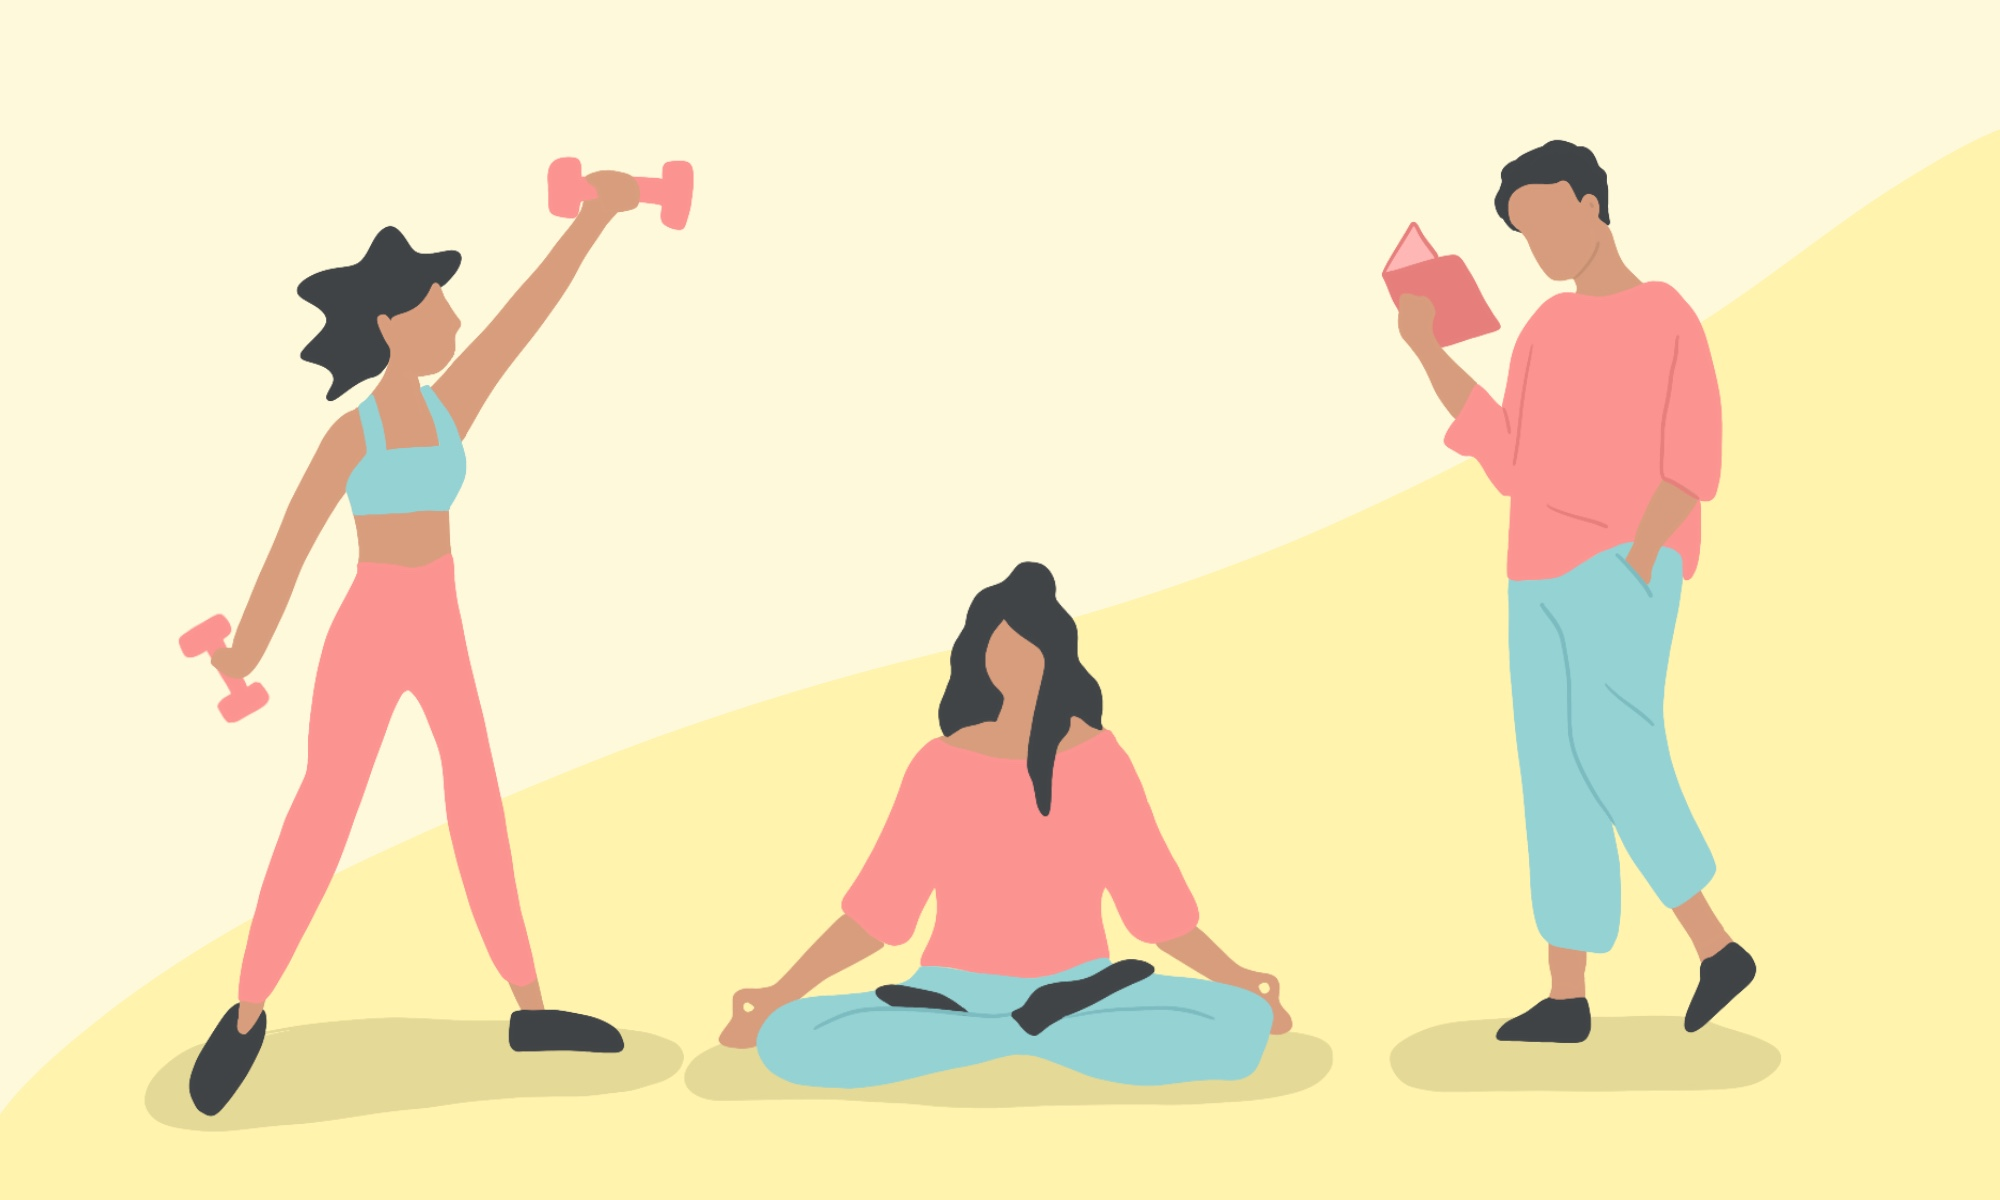 3 illustrations on a patterned background of a girl holding dumbbells, a girl sitting and meditating, a man standing and reading.